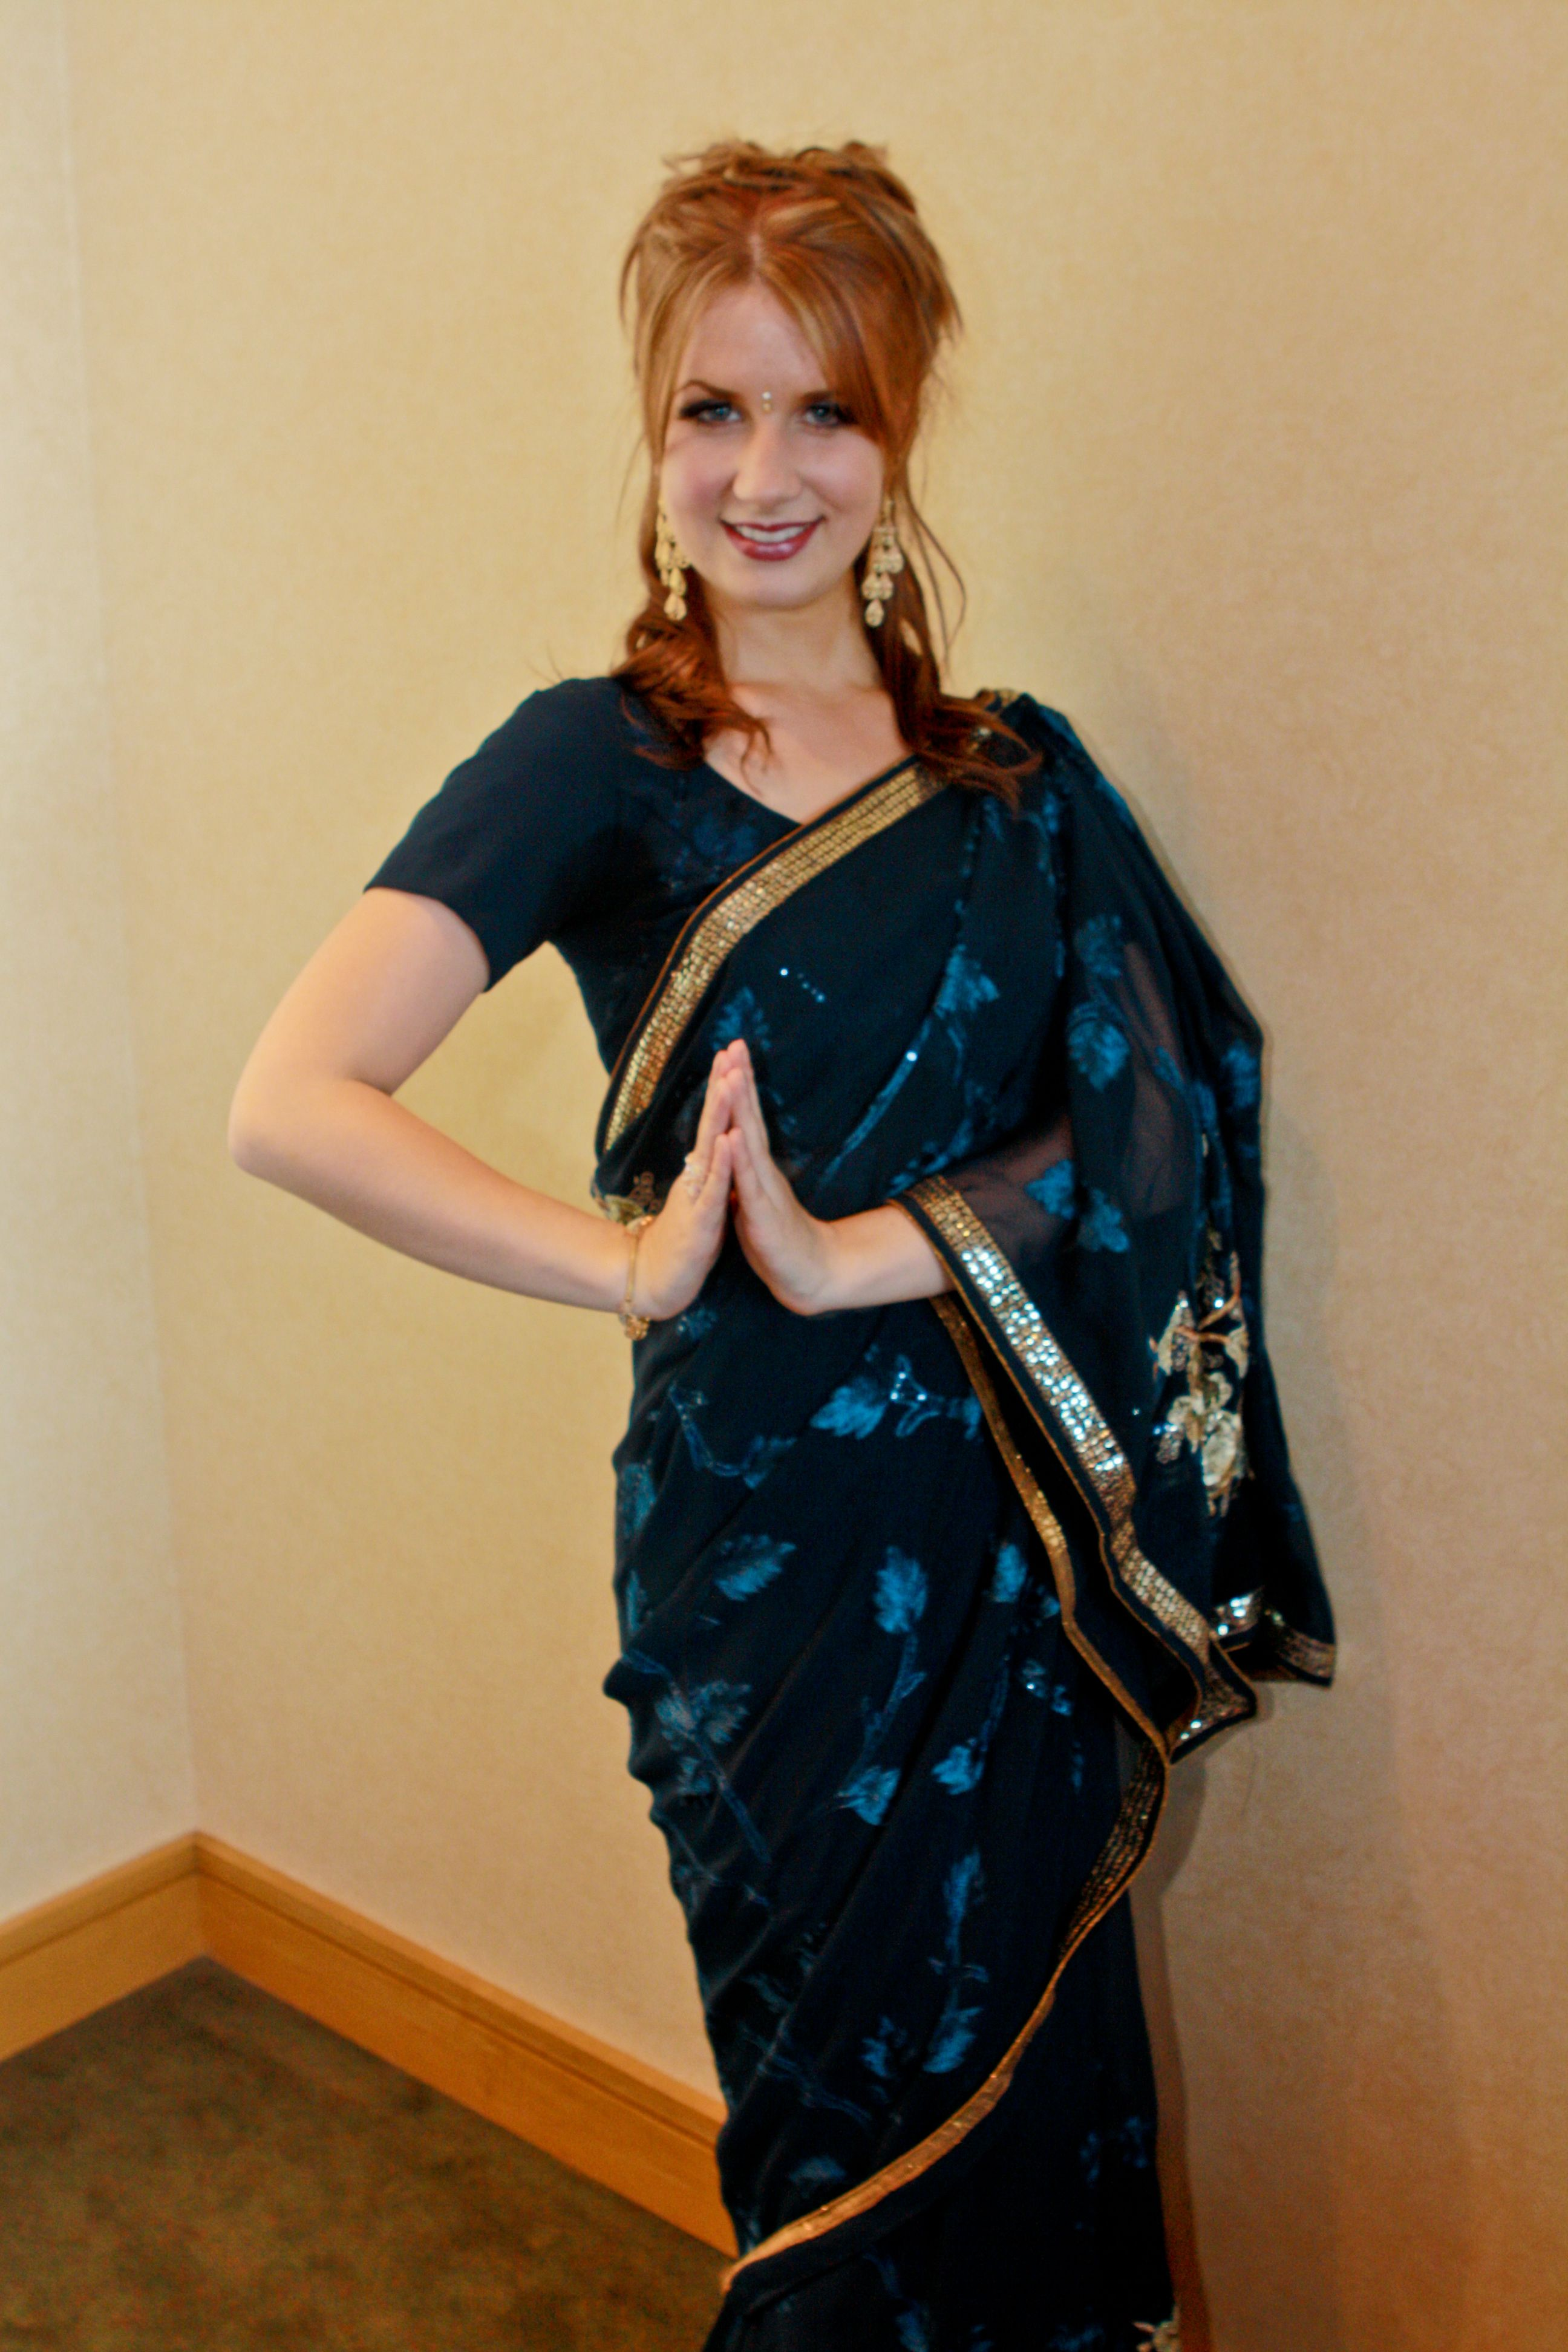 I had this sari made for me in New Dheli. For my Global Fashion Show I produced to raise money for immigrant and refugee programs.